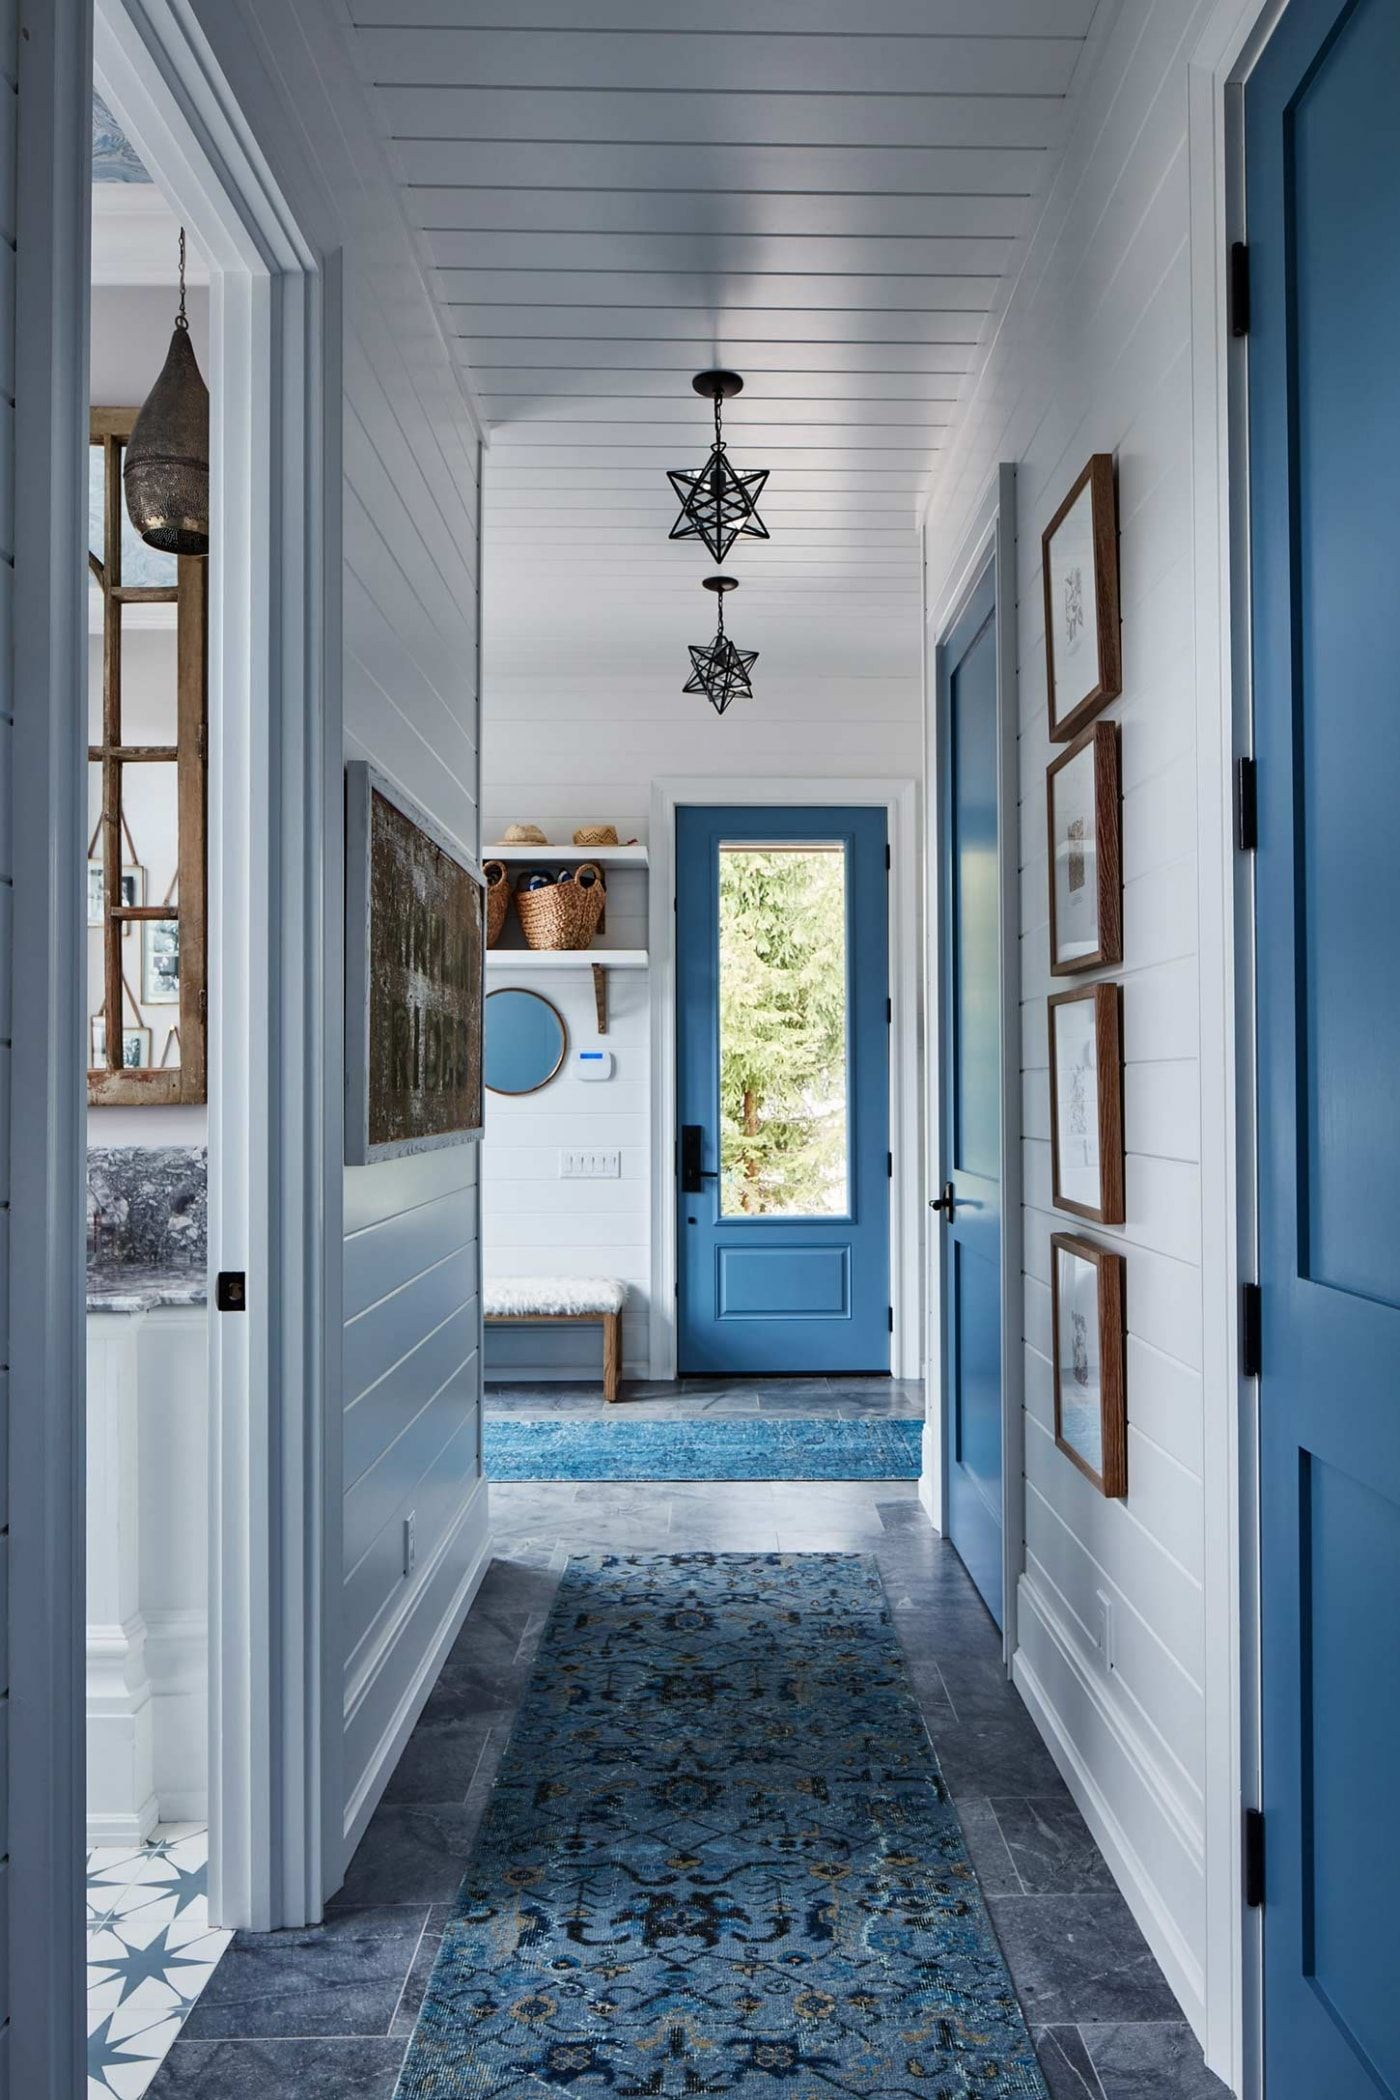 Mudroom - Sarah off the Grid | Interiors | Pinterest | Mudroom ...